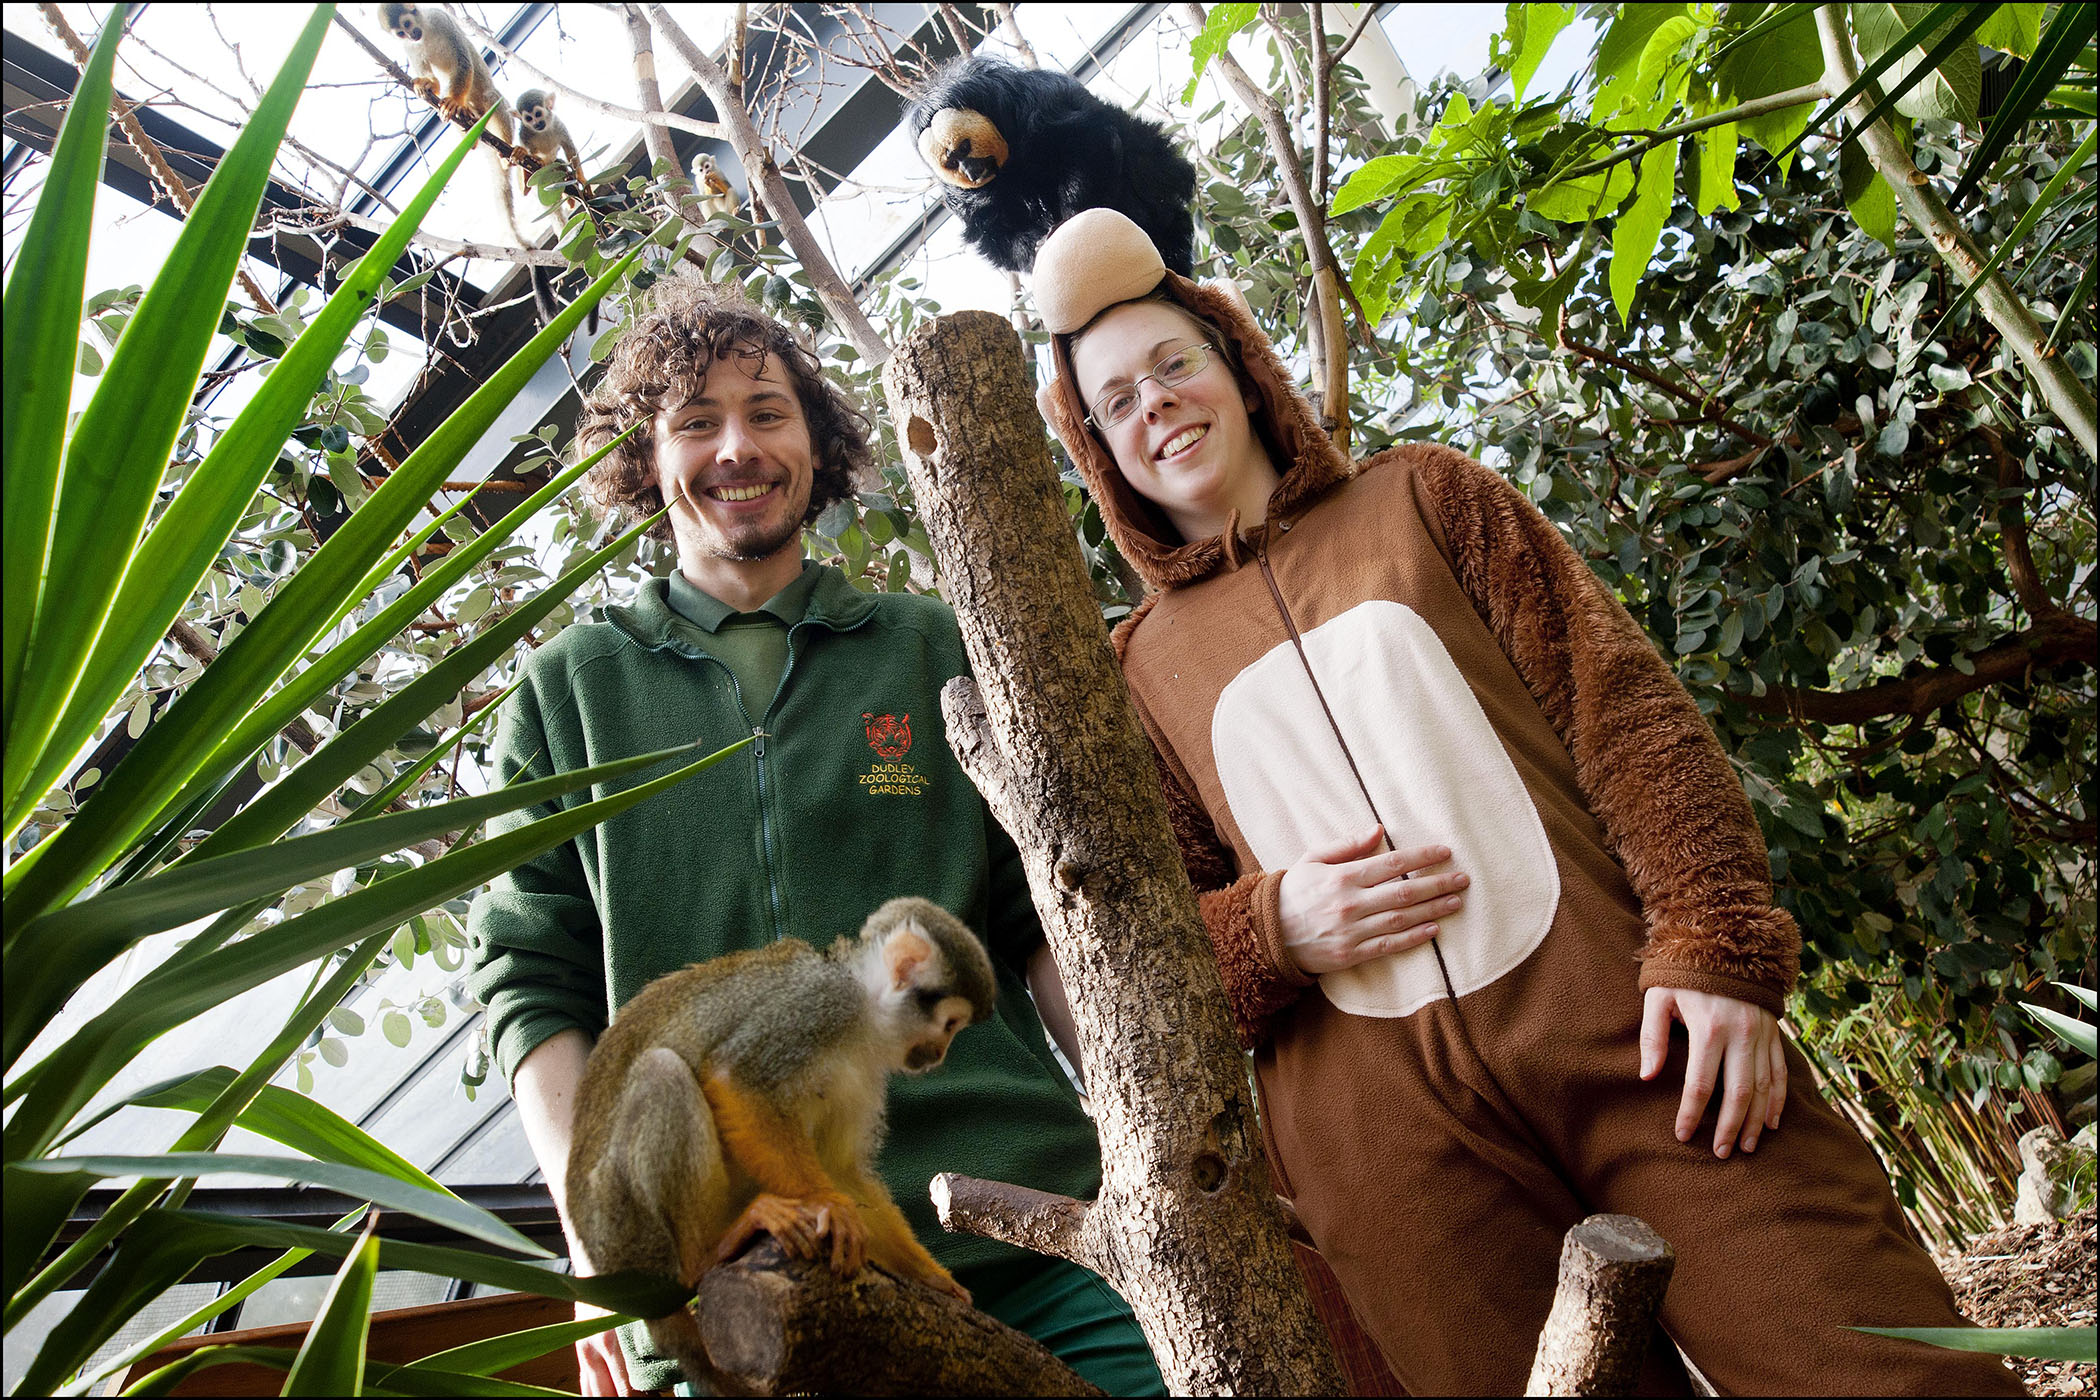 Head of lower primates, Nicola Wright, gets to work in her monkey onesie alongside trainee keeper, Shaun Crompton.